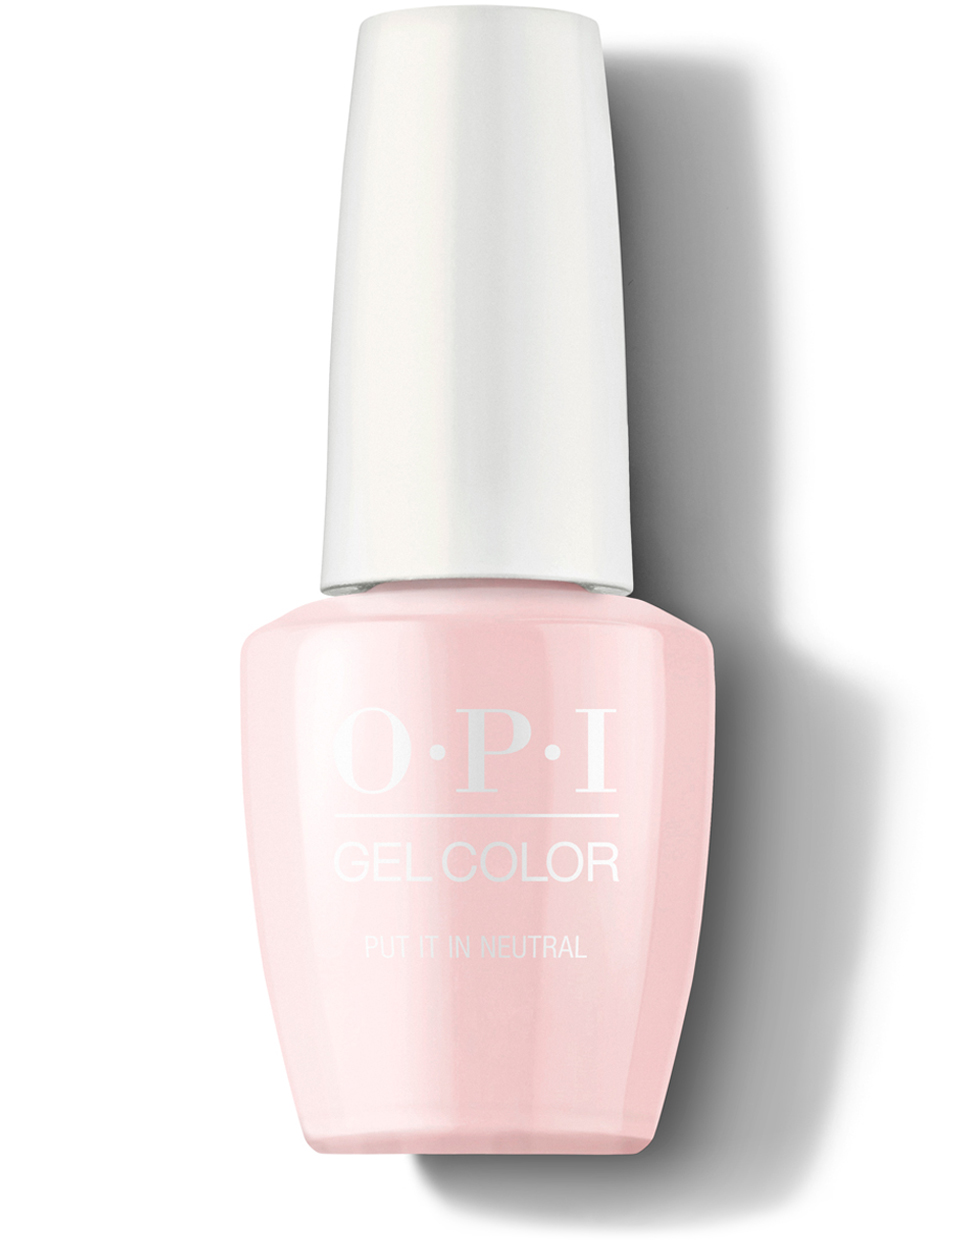 Put It In Neutral - GelColor | OPI